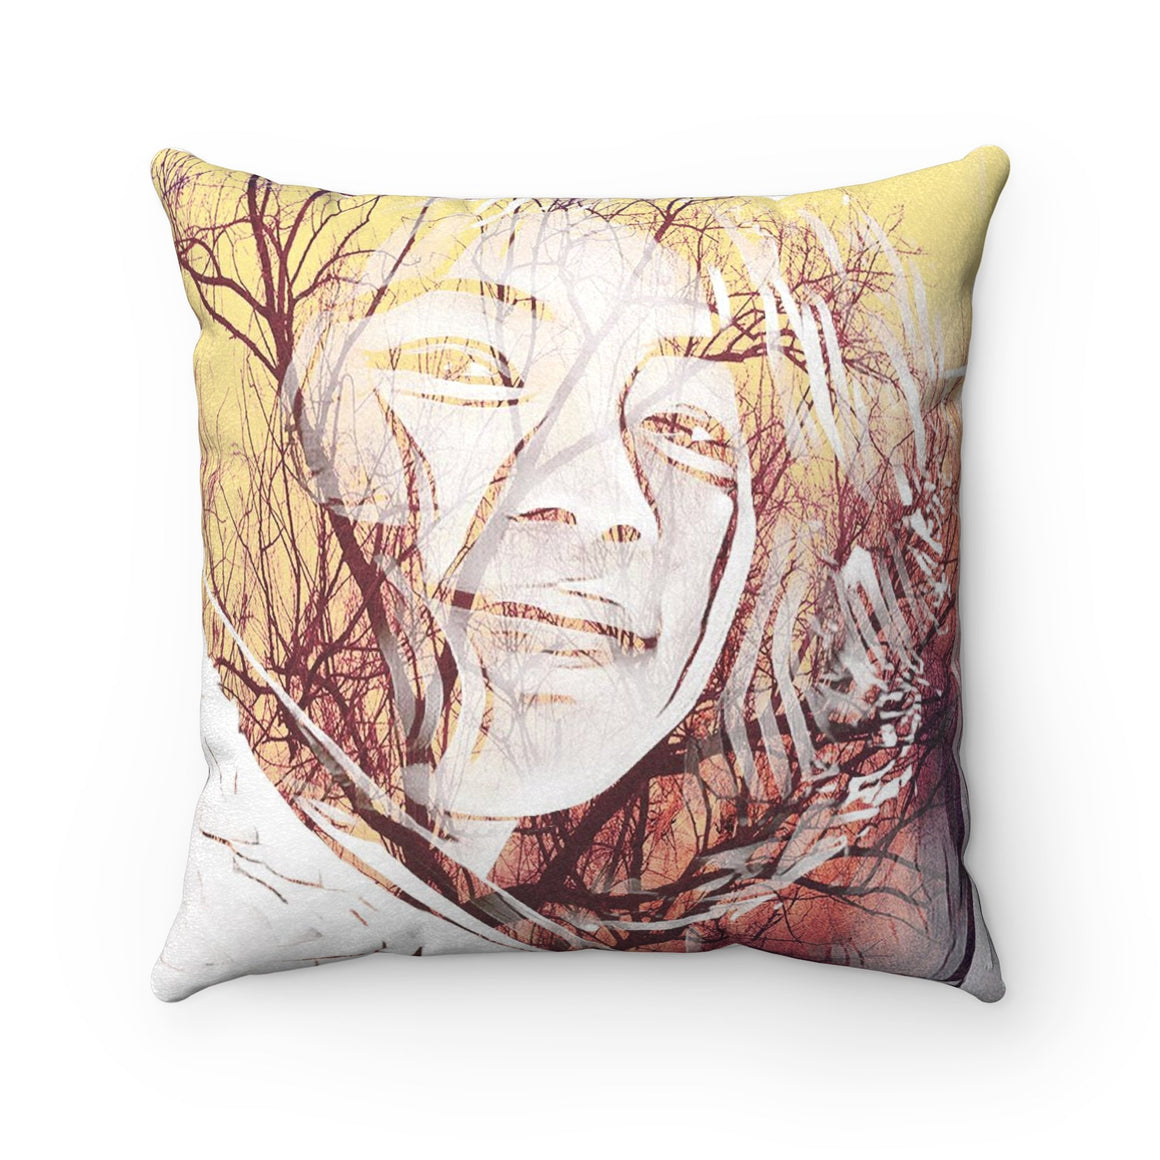 Levi Thang Vintage Face Design S Faux Suede Square Pillow Case